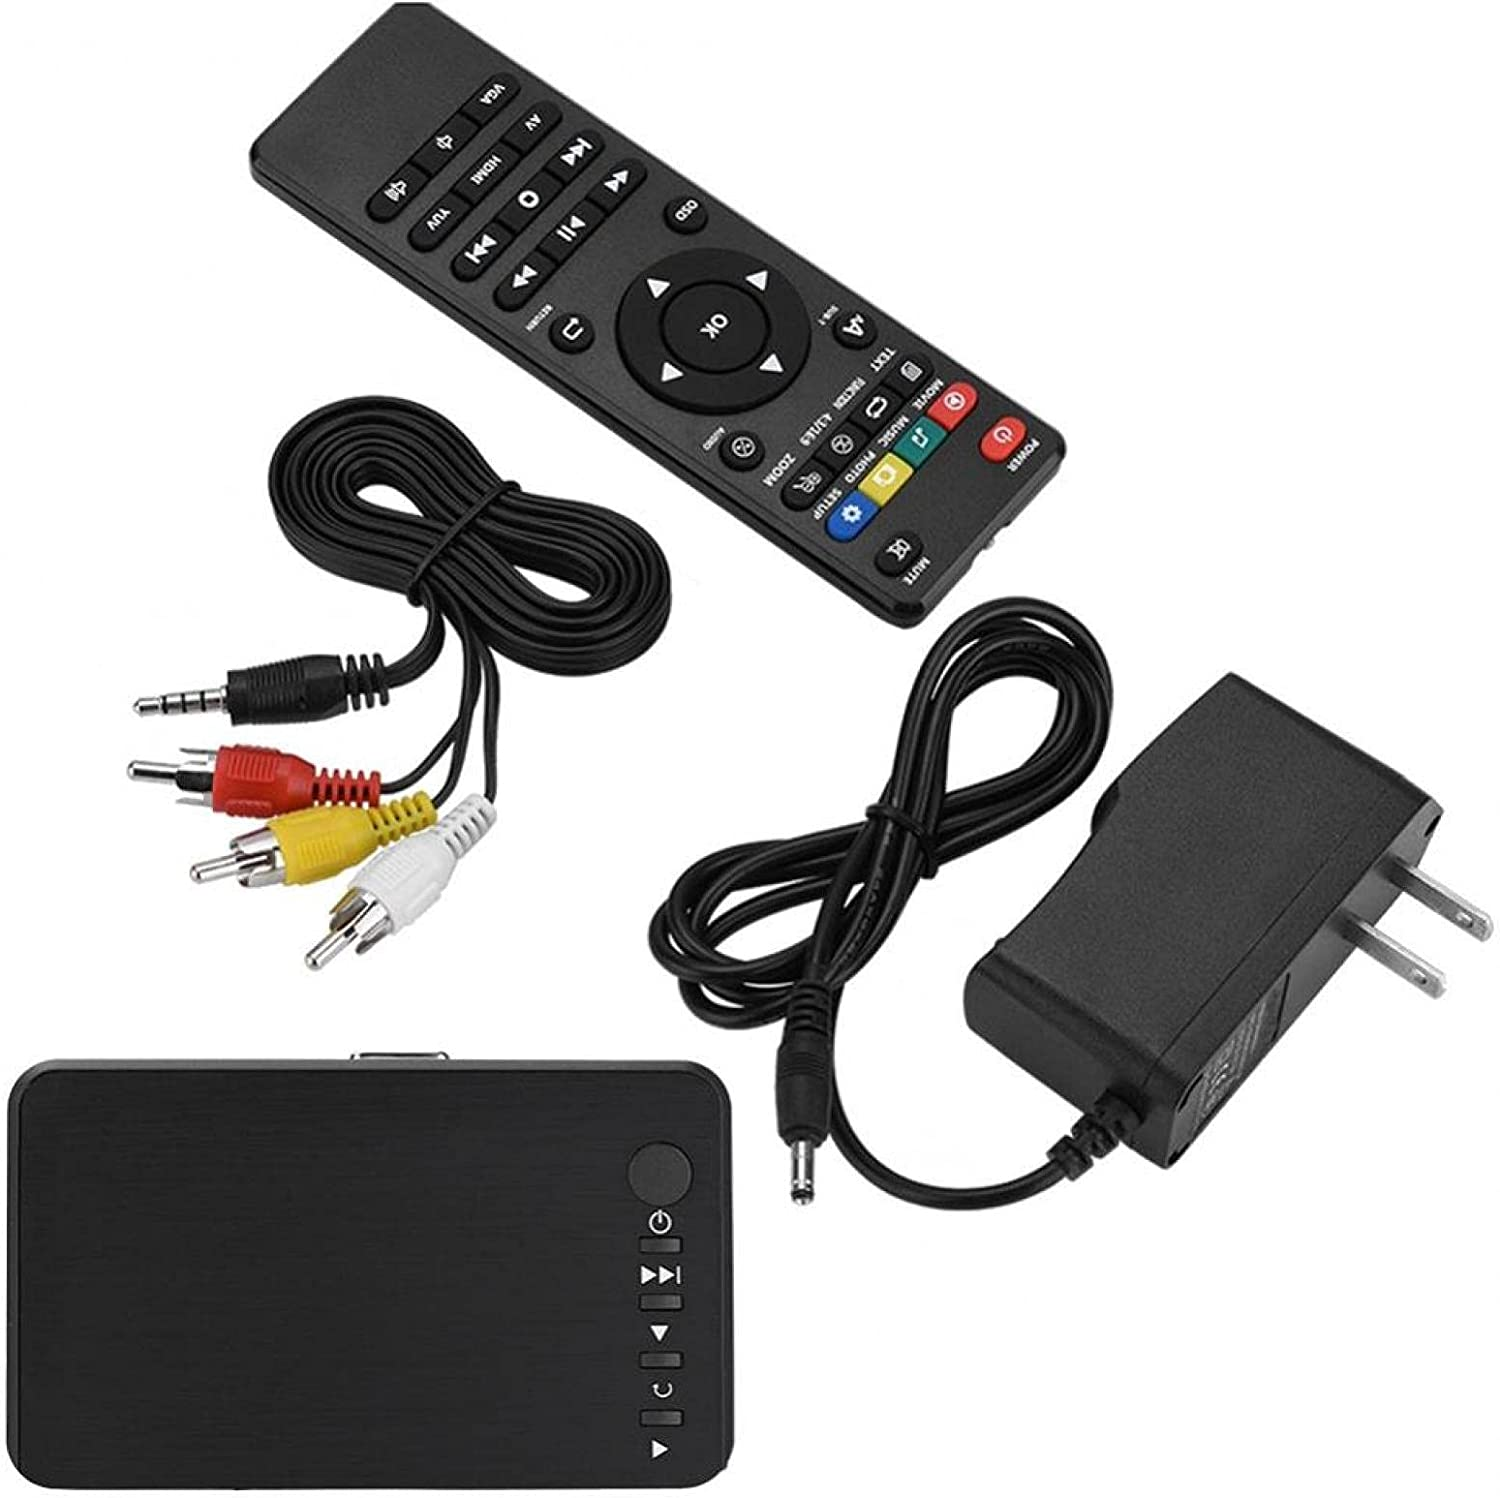 Mxzzand HDMI Video Multimedia Player for Home Travel Office(U.S. regulations, Transl)